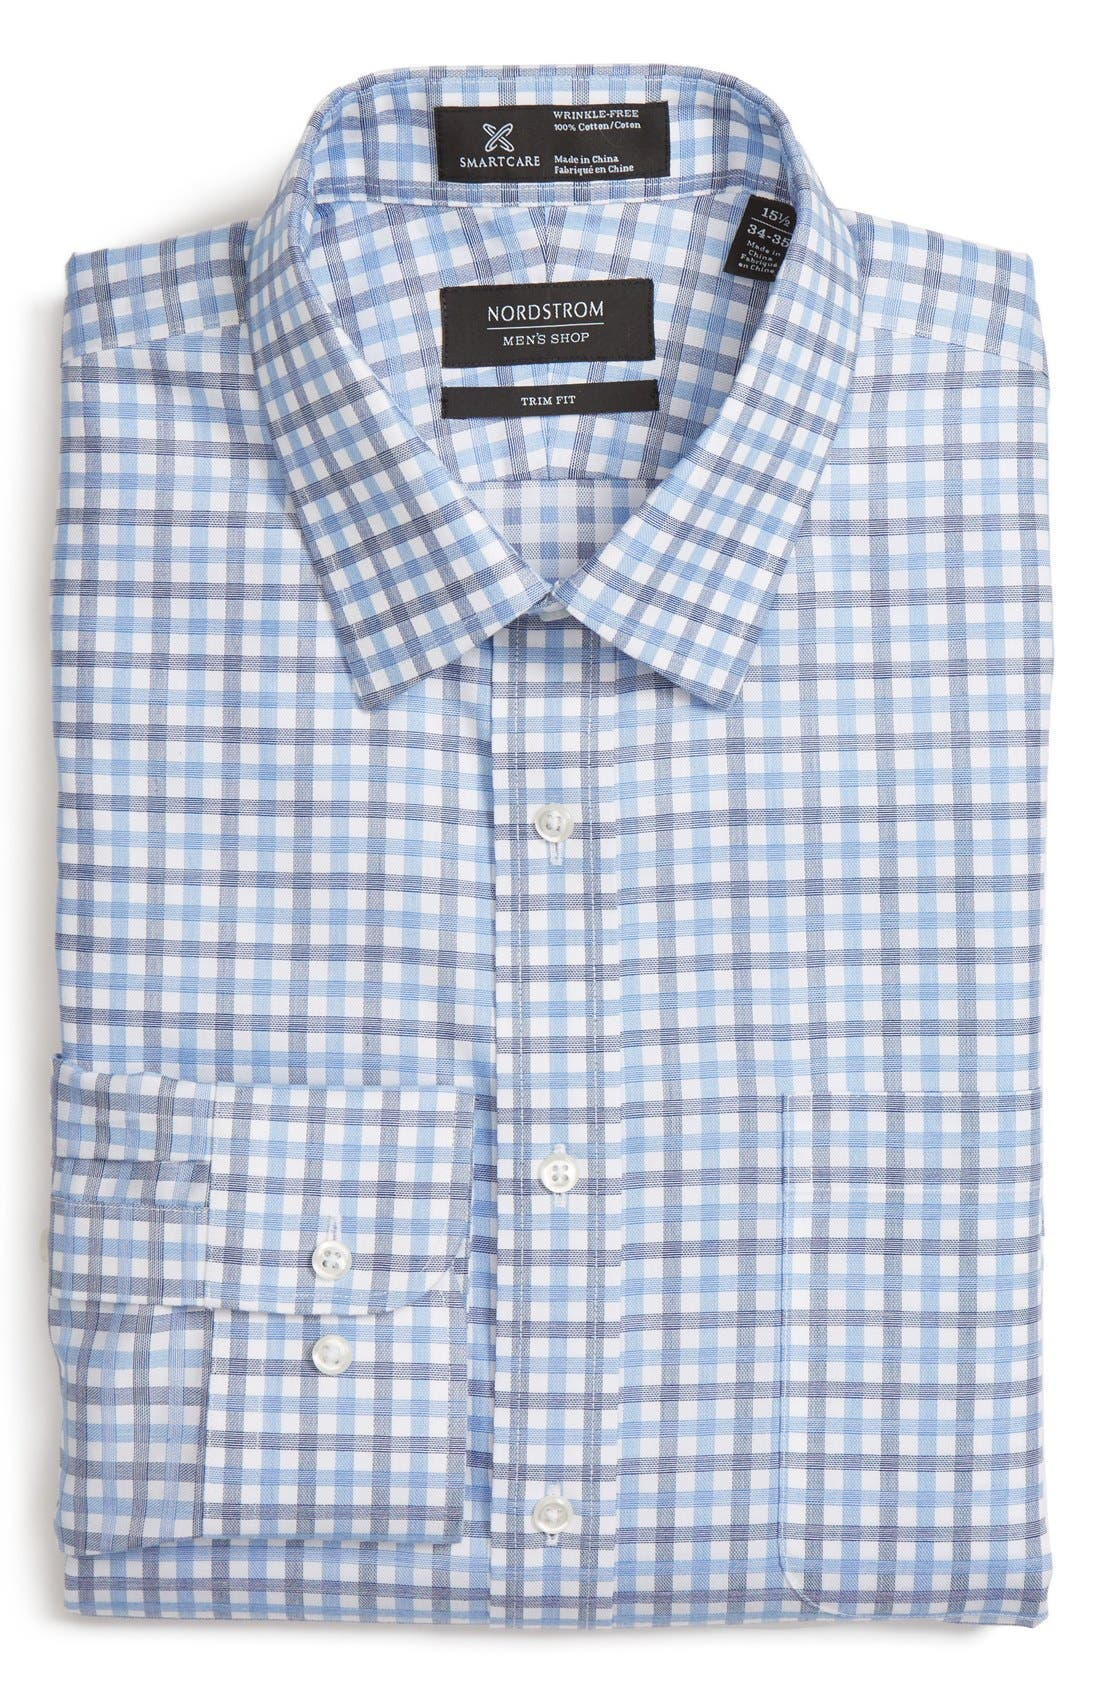 NORDSTROM MEN'S SHOP Smartcare™ Trim Fit Check Dress